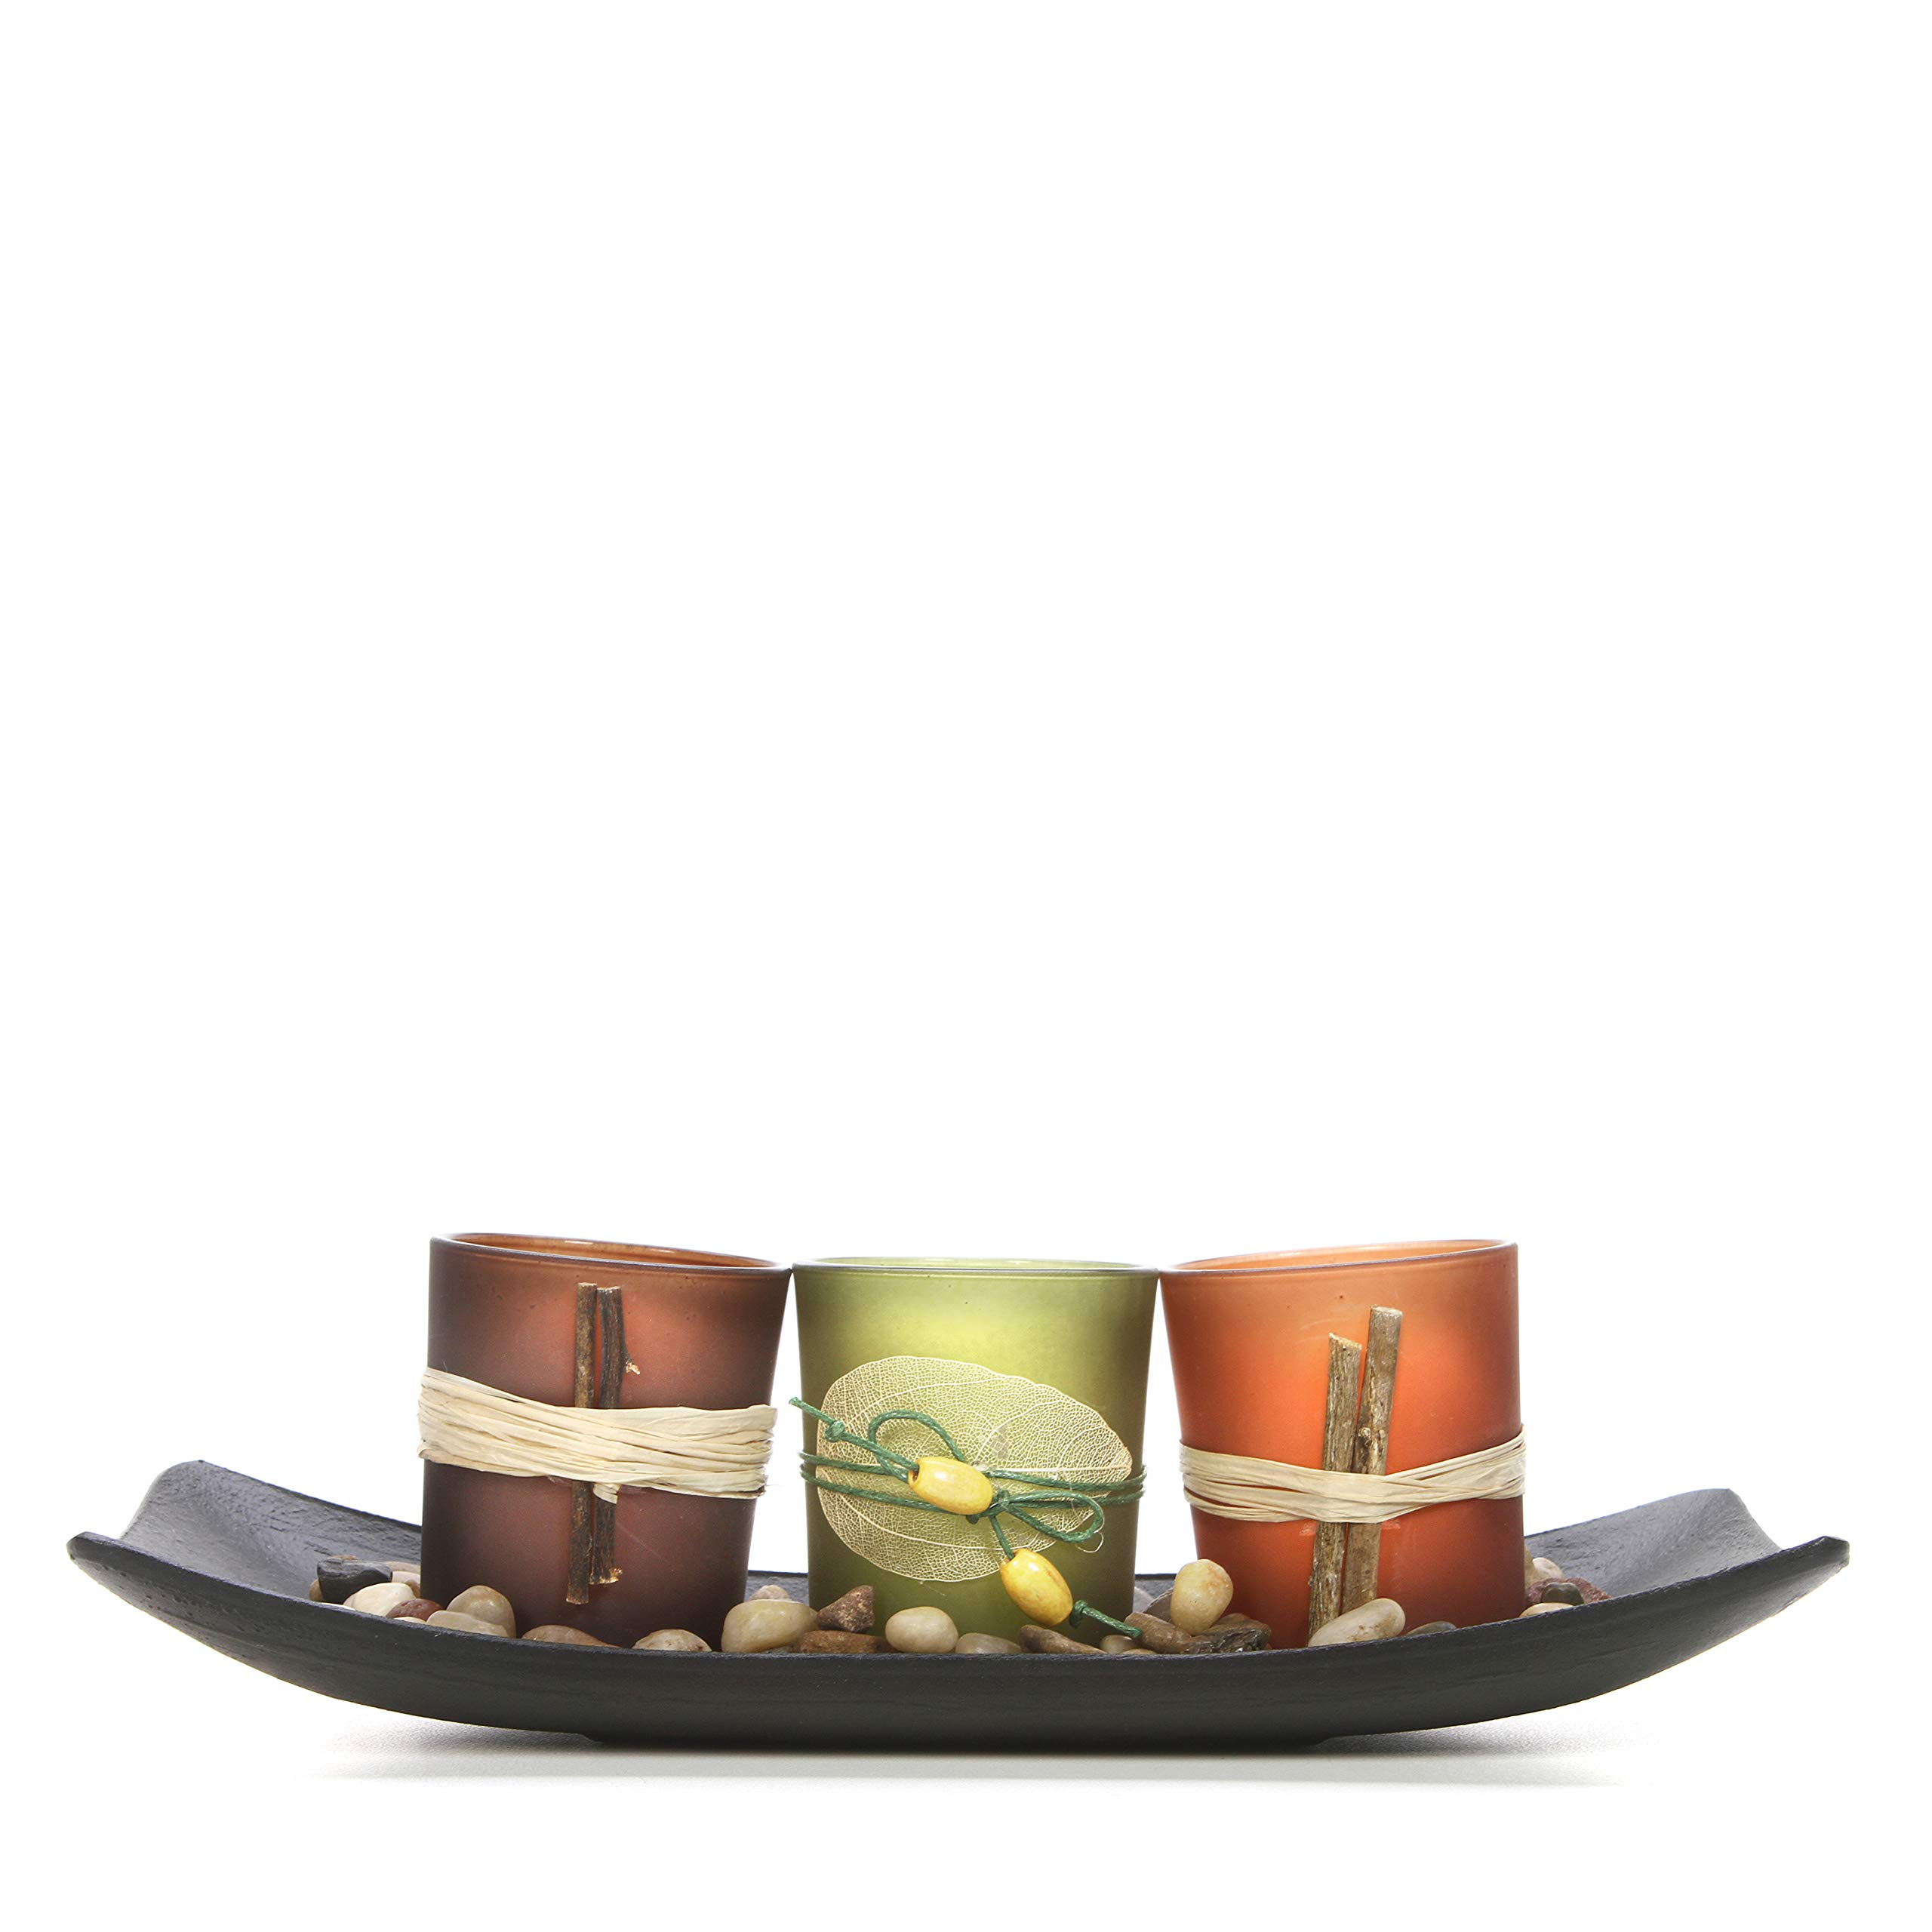 Hosley Natural Candlescape Set of 3 Decorative Candle Holders, Rocks and Tray 10'' Long. Ideal Gift for Wedding, Party, Spa, Aromatherapy LED Tea Light Votive Candle Gardens O5